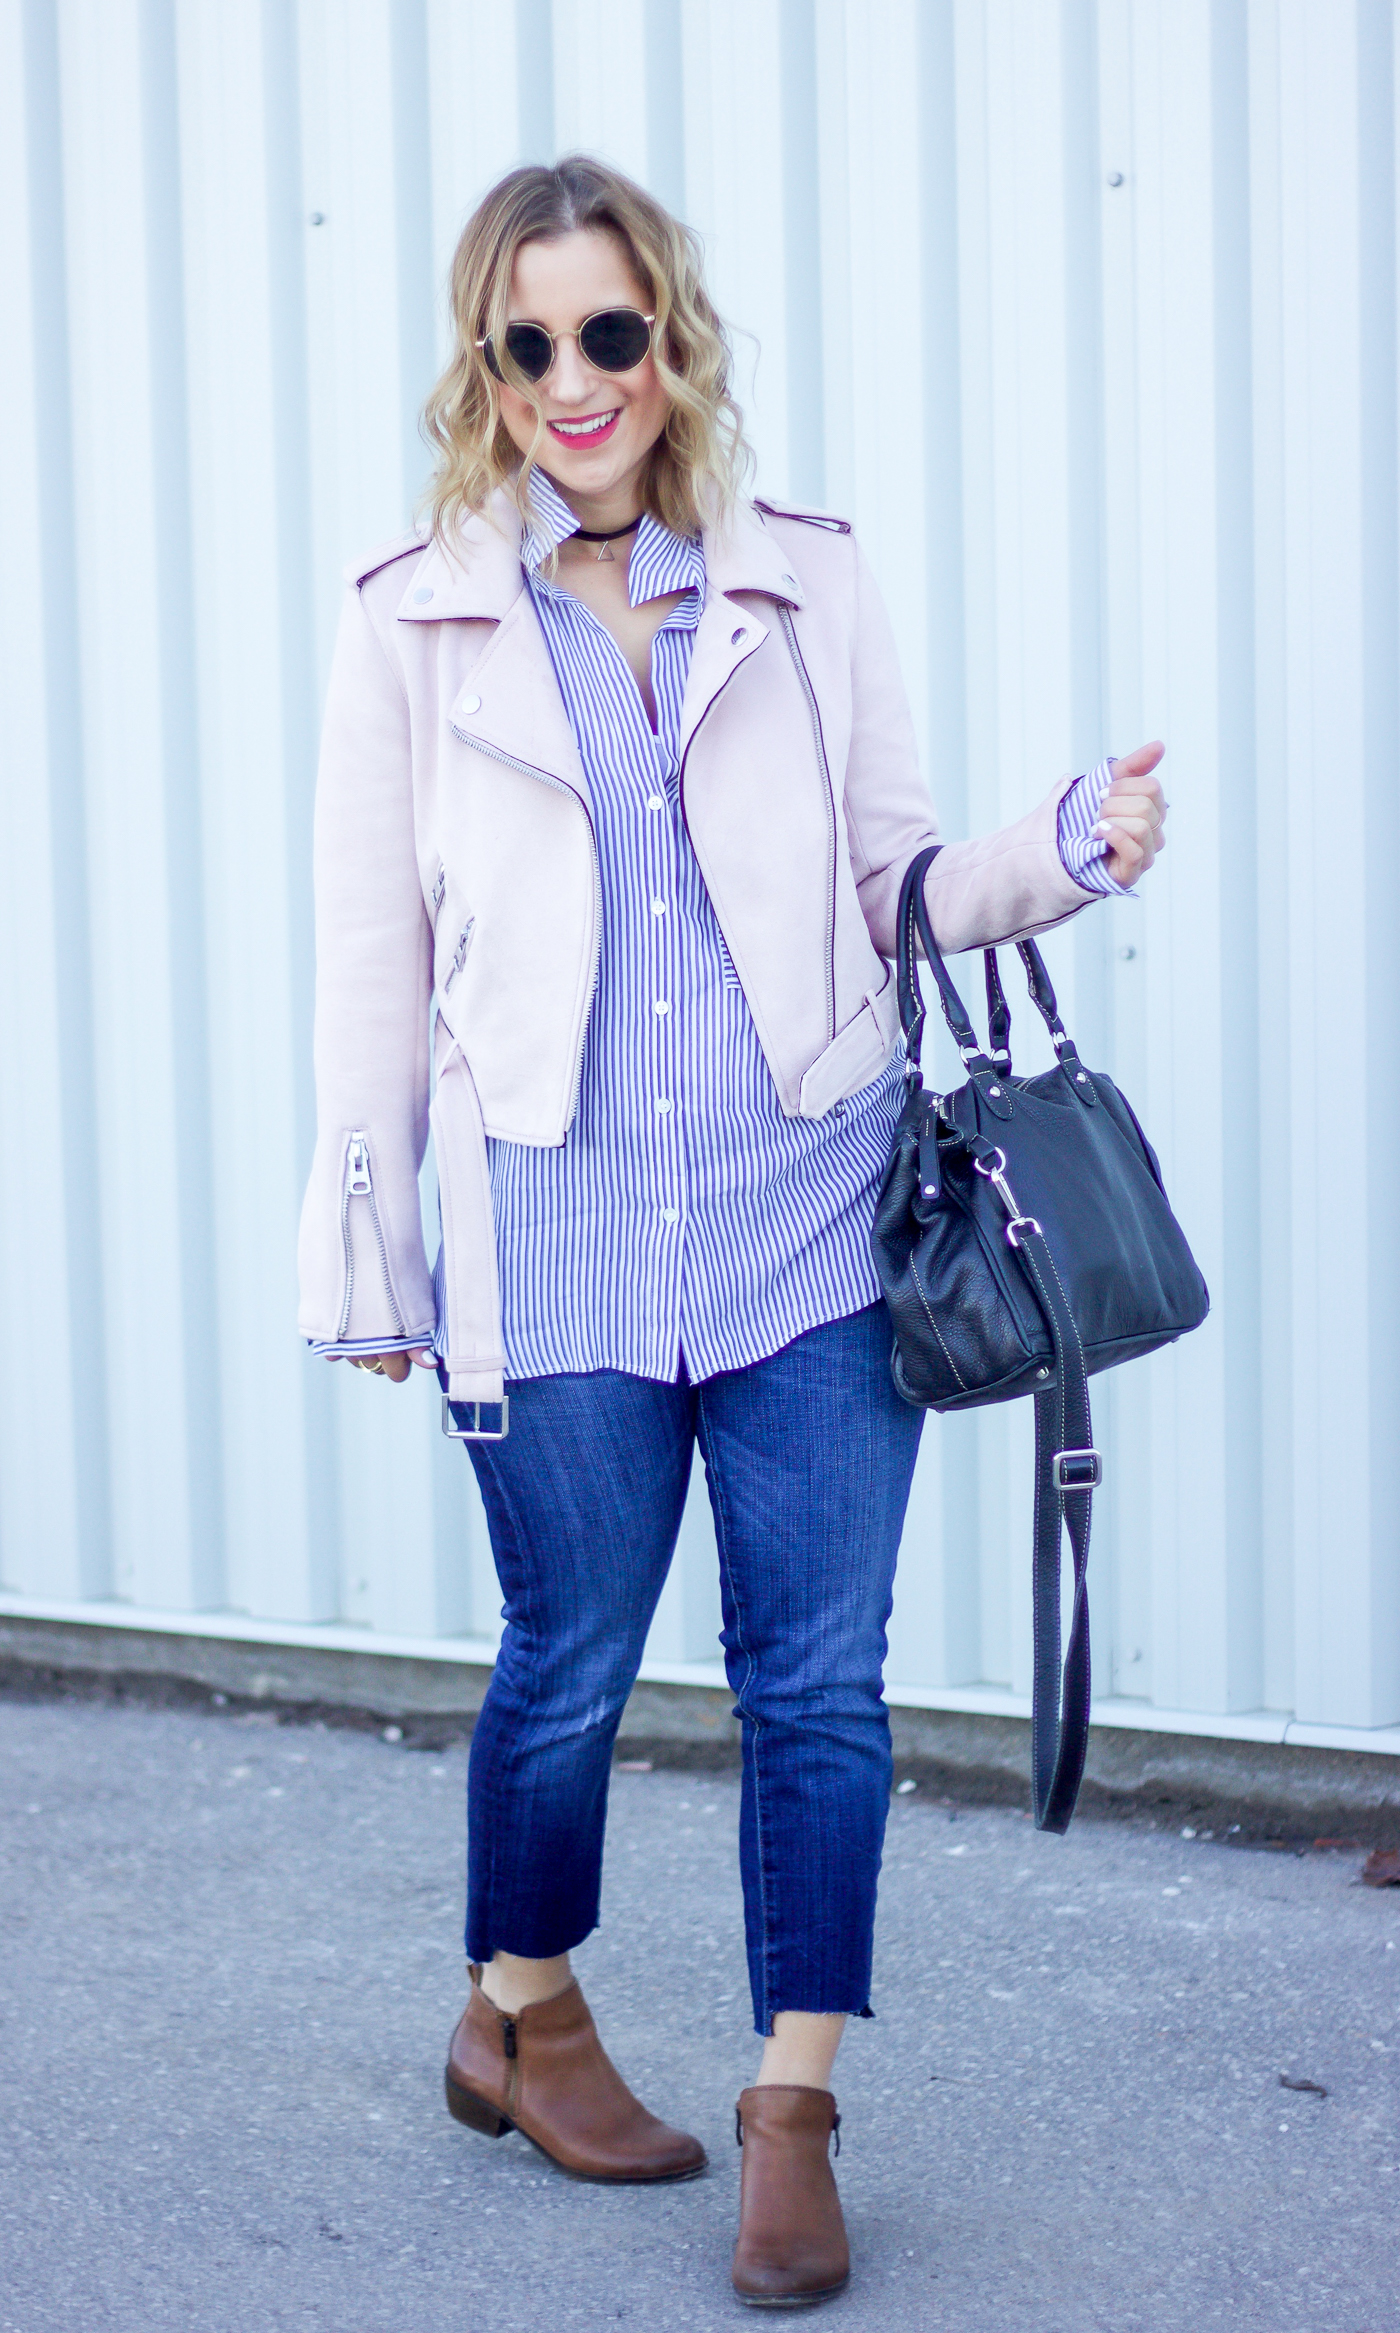 Canadian fashion blogger is wearing a pastel pink moto jacket from Zara with a striped button down blouse and jeans